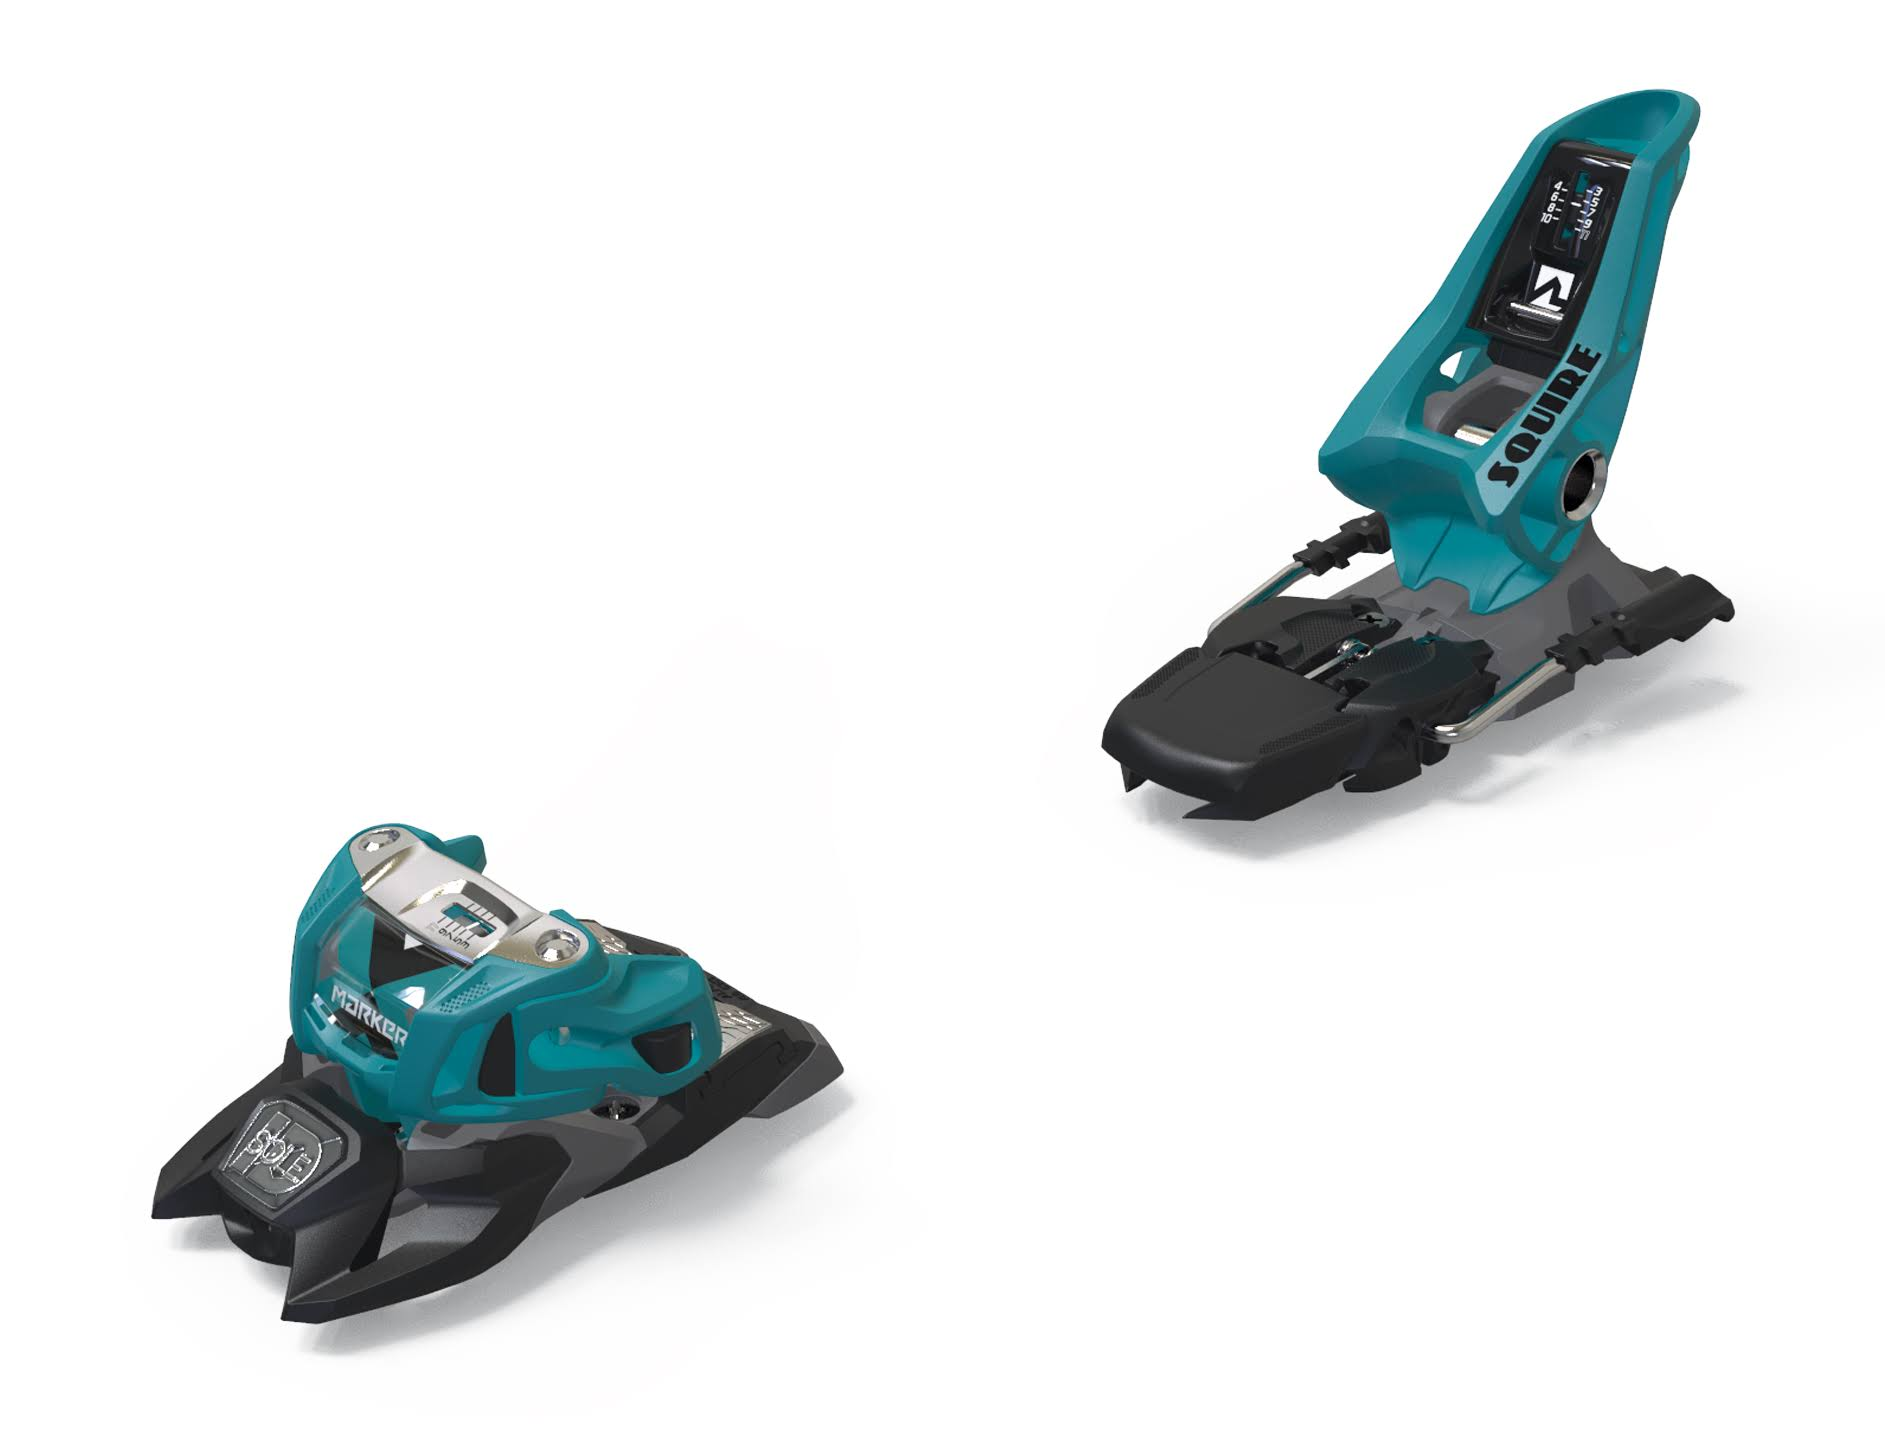 Marker Squire 11 ID Ski Bindings 2020 (Teal/Black, 110mm)